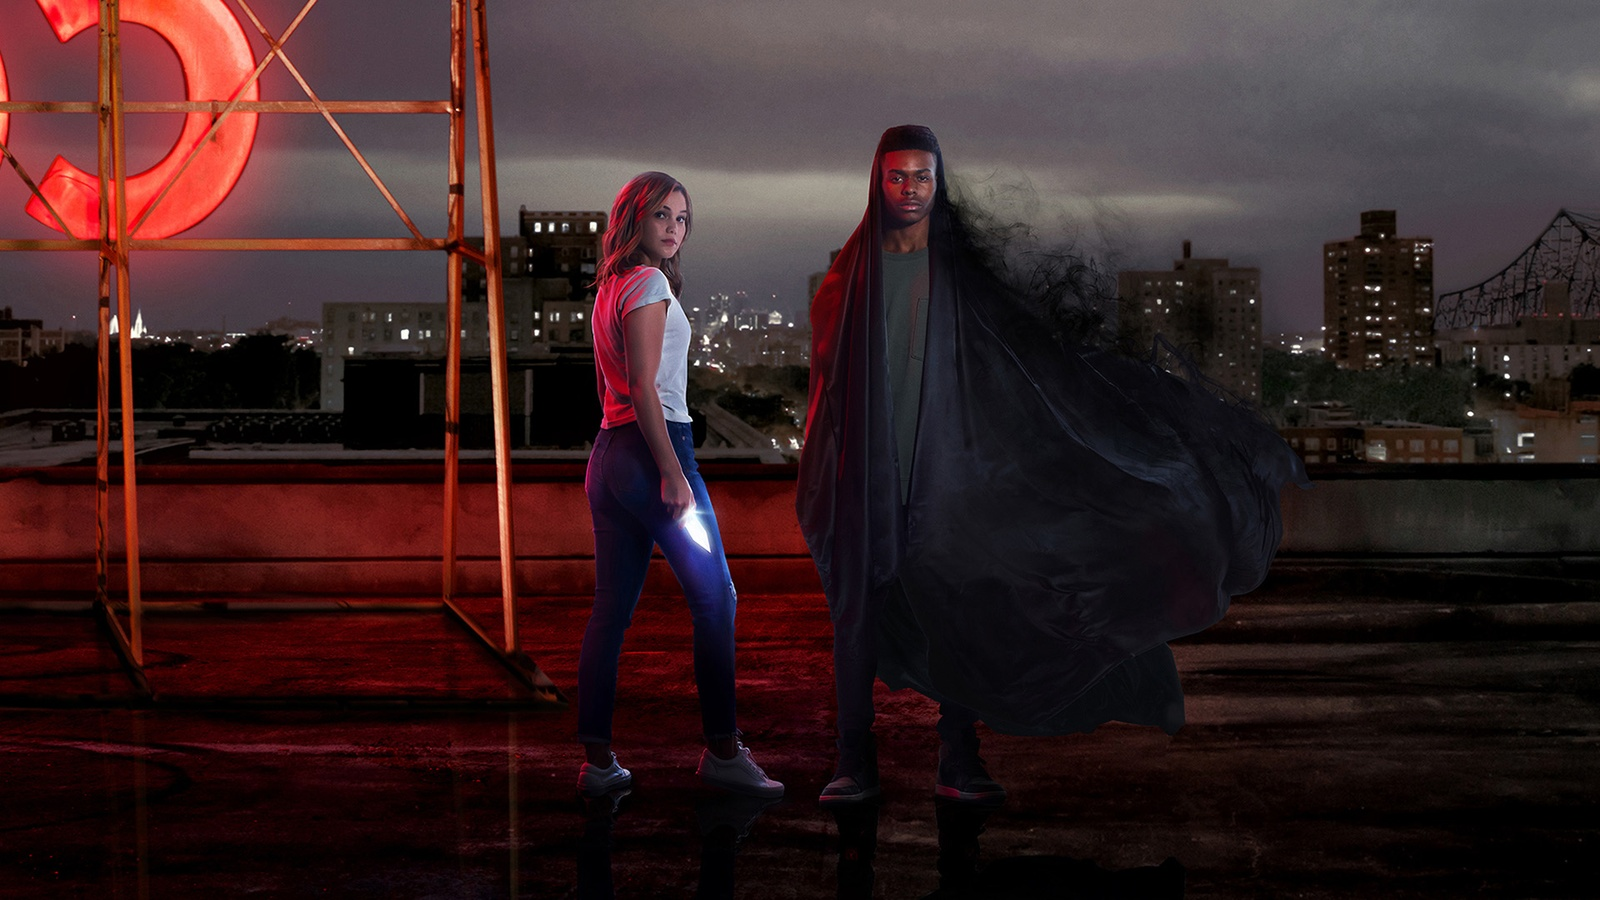 Плащ и Кинжал / Marvel's Cloak & Dagger background